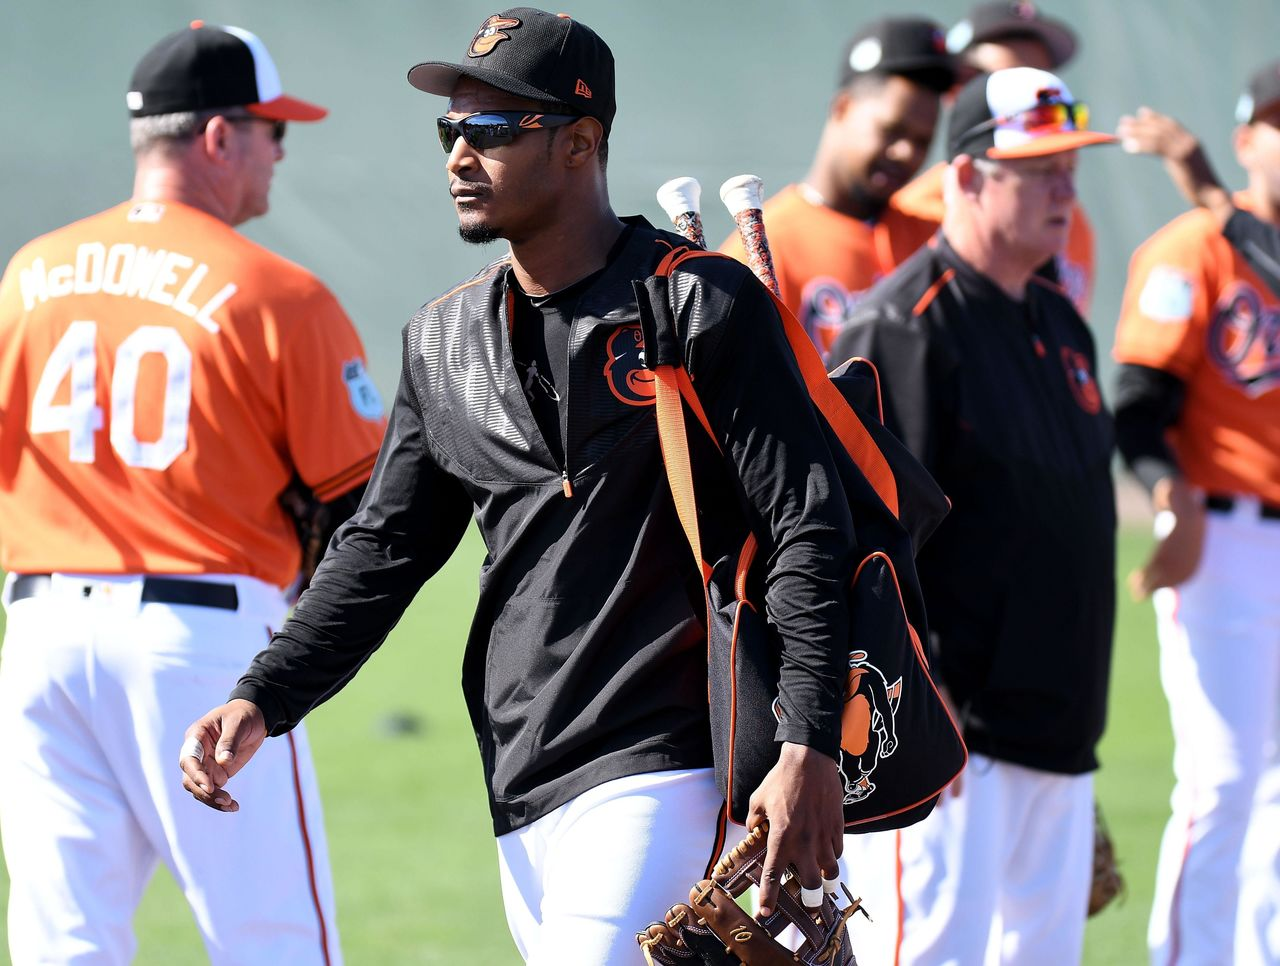 Cropped 2017 02 17t164947z 2087509184 nocid rtrmadp 3 mlb baltimore orioles workouts